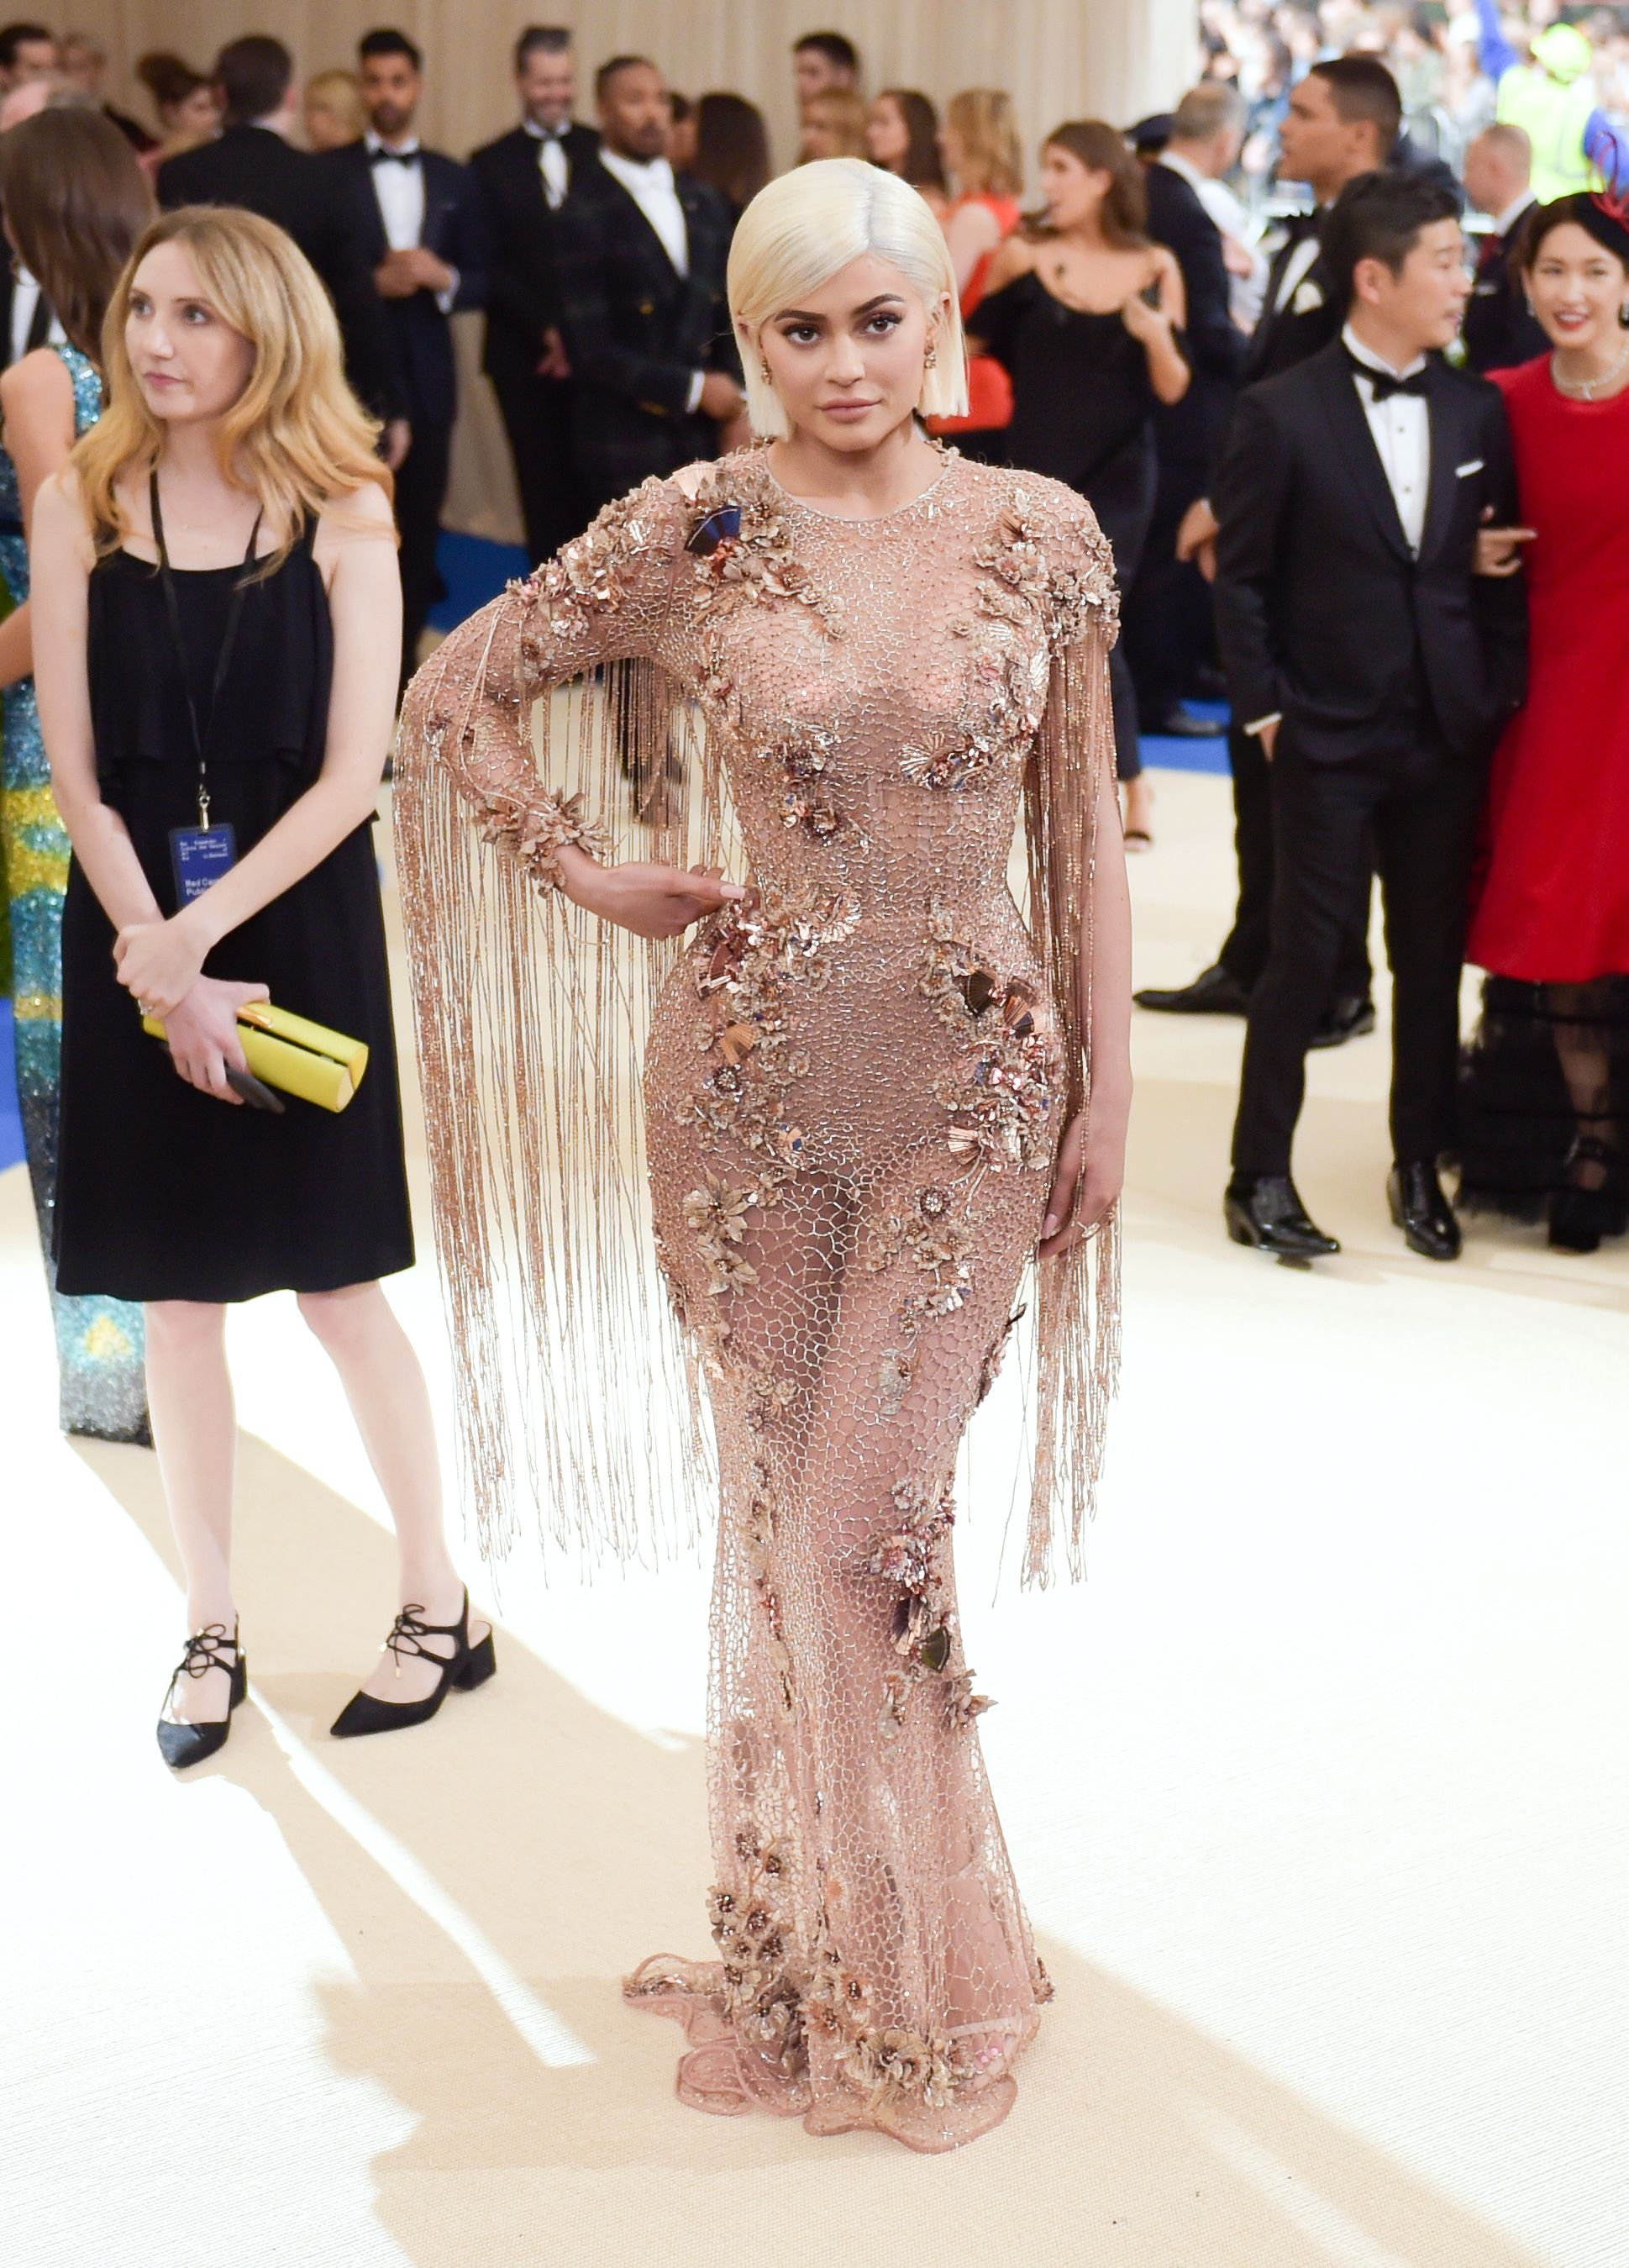 """Kylie Jenner at the """"Rei Kawakubo/Comme des Garcons: Art Of The In-Between"""" Costume Institute Gala - Arrivals at Metropolitan Museum of Art on May 1, 2017 in New York City.   Source: Getty Images"""